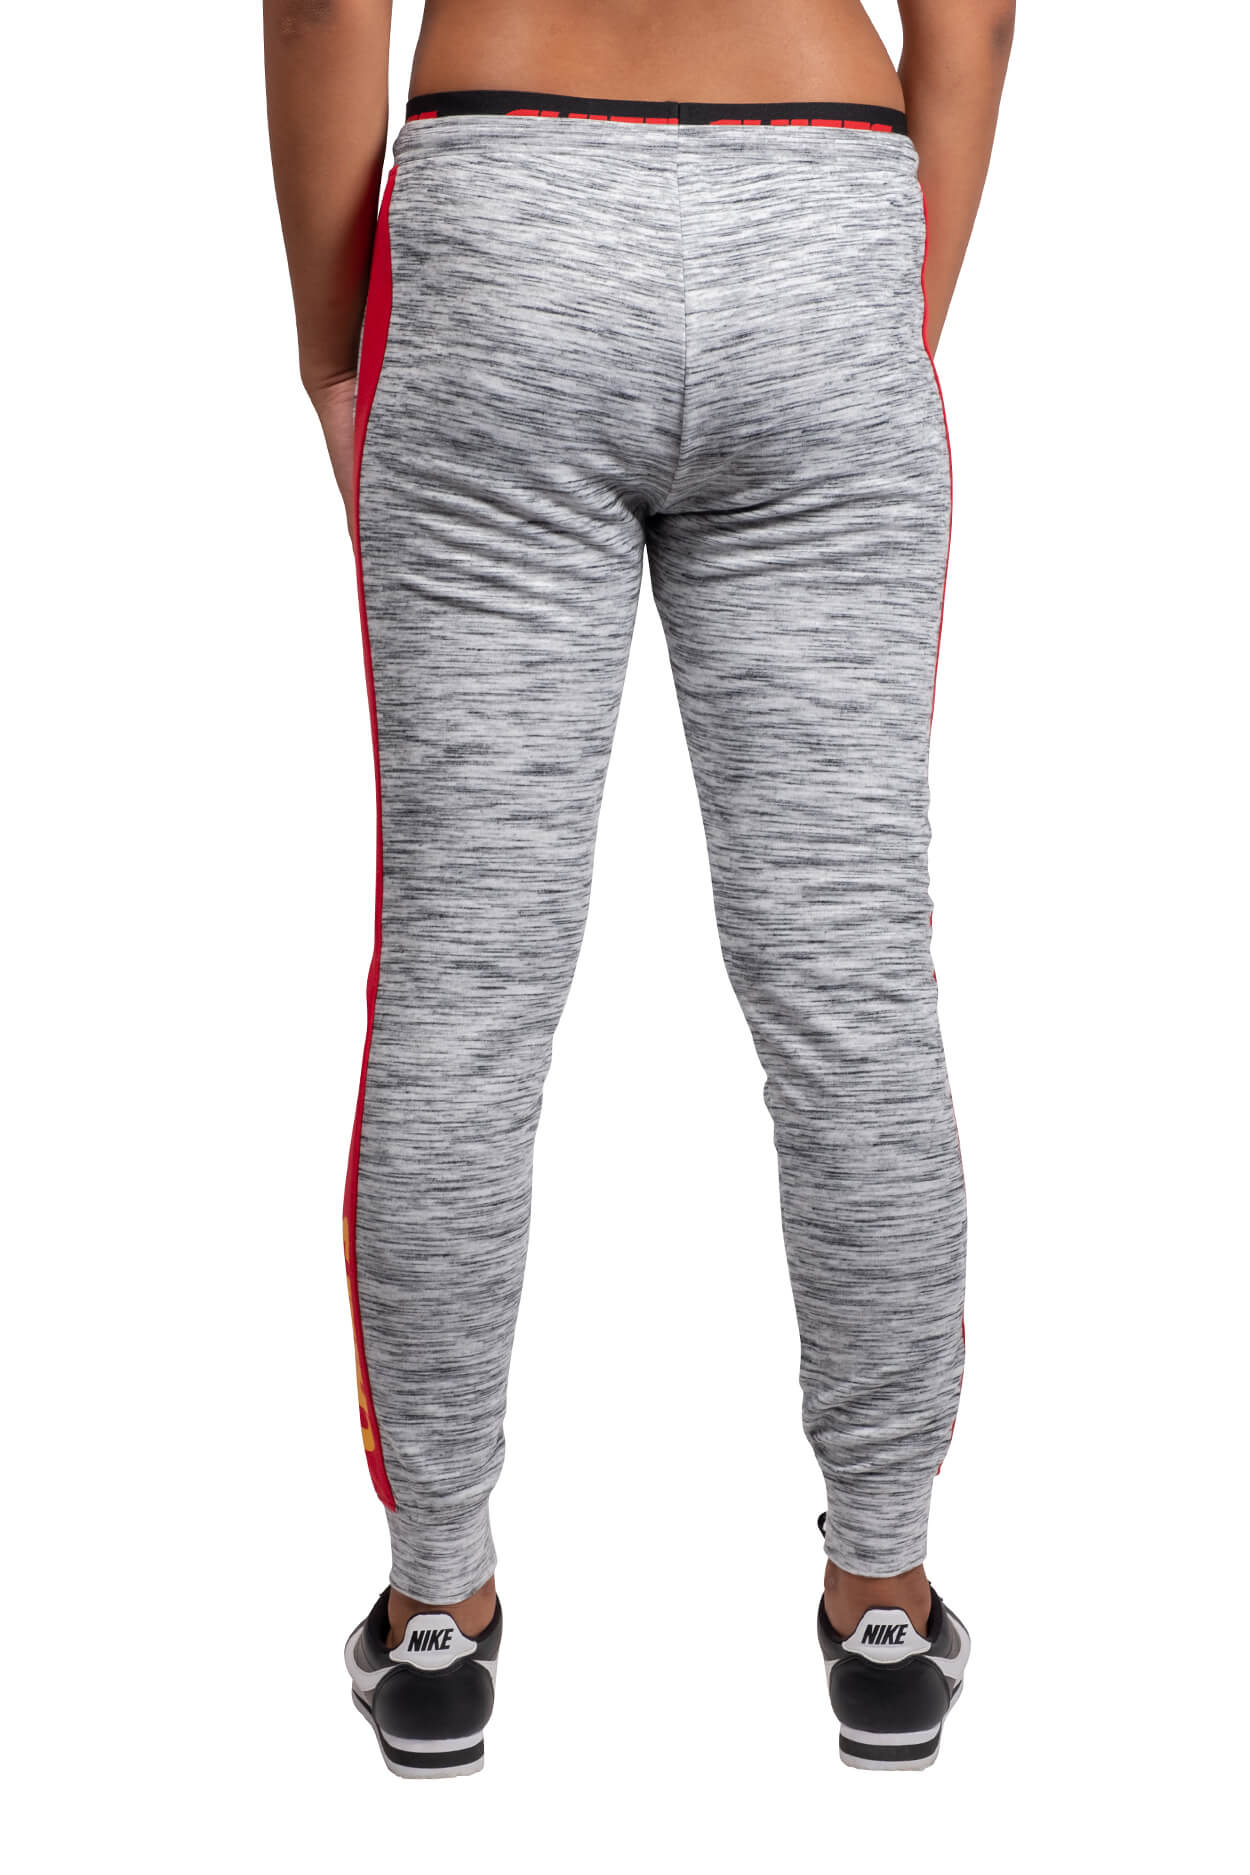 NFL Kansas City Chiefs Women's Basic Jogger|Kansas City Chiefs